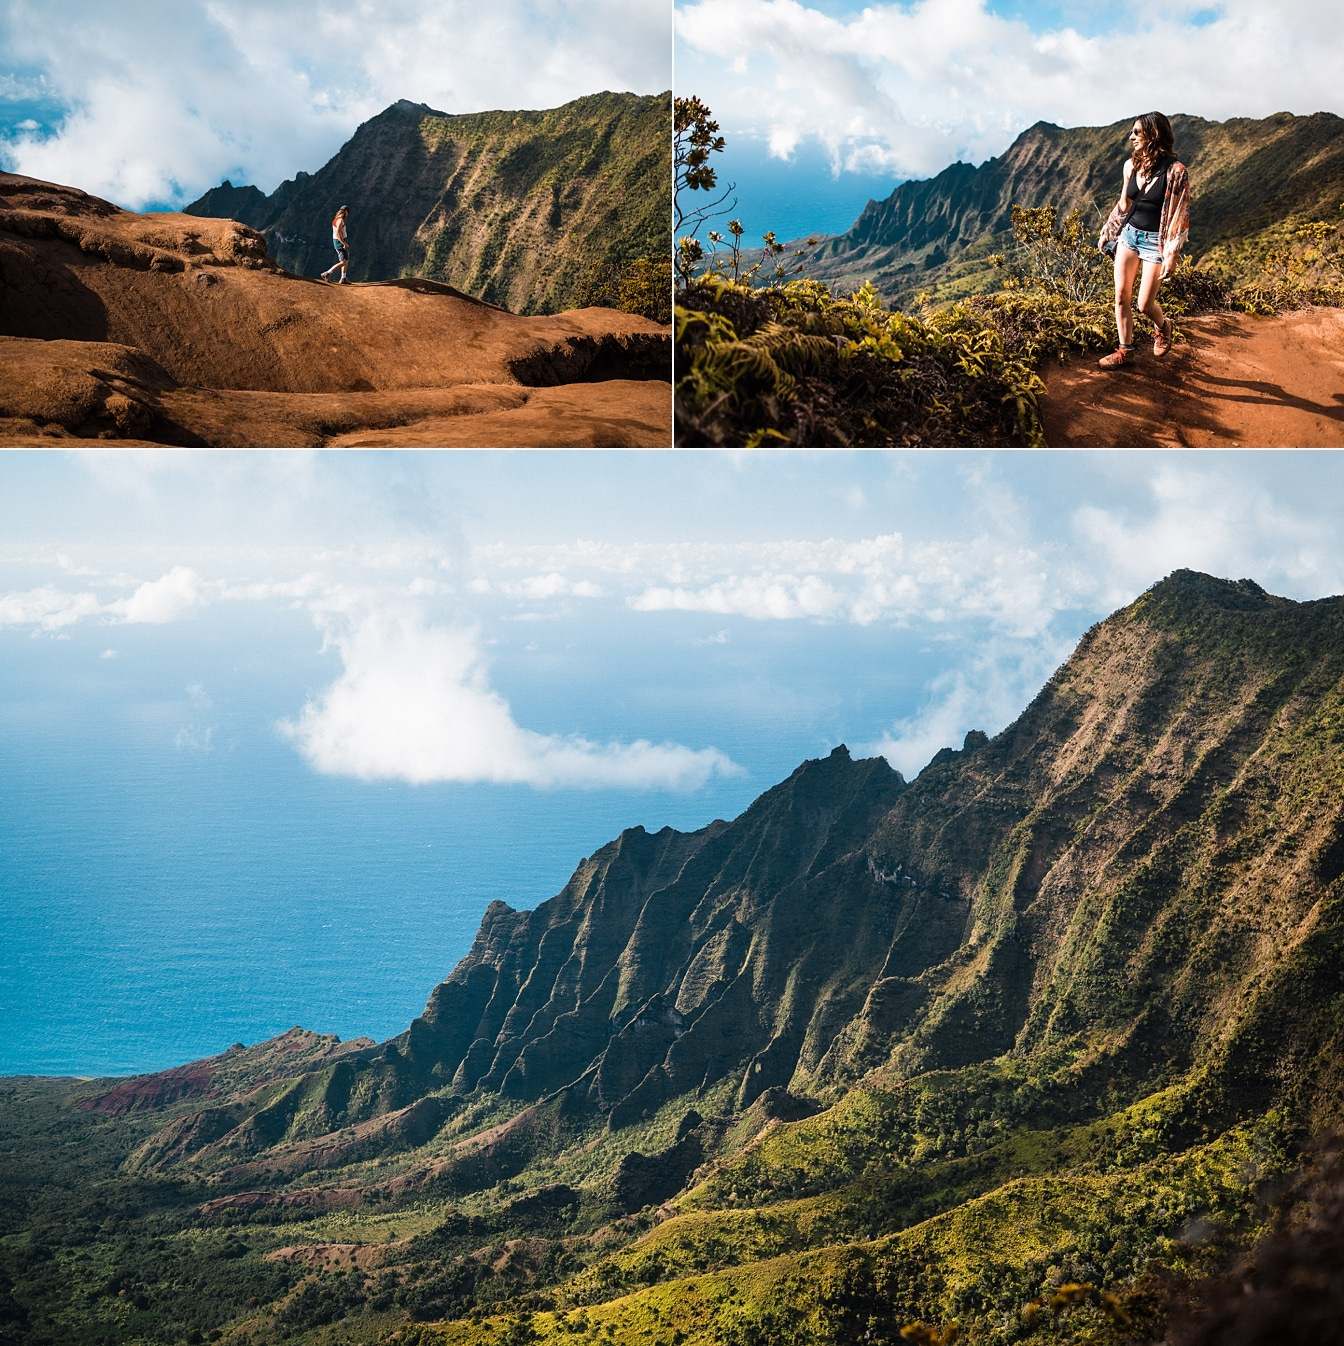 Kauai Elopement location scouting ridge hike